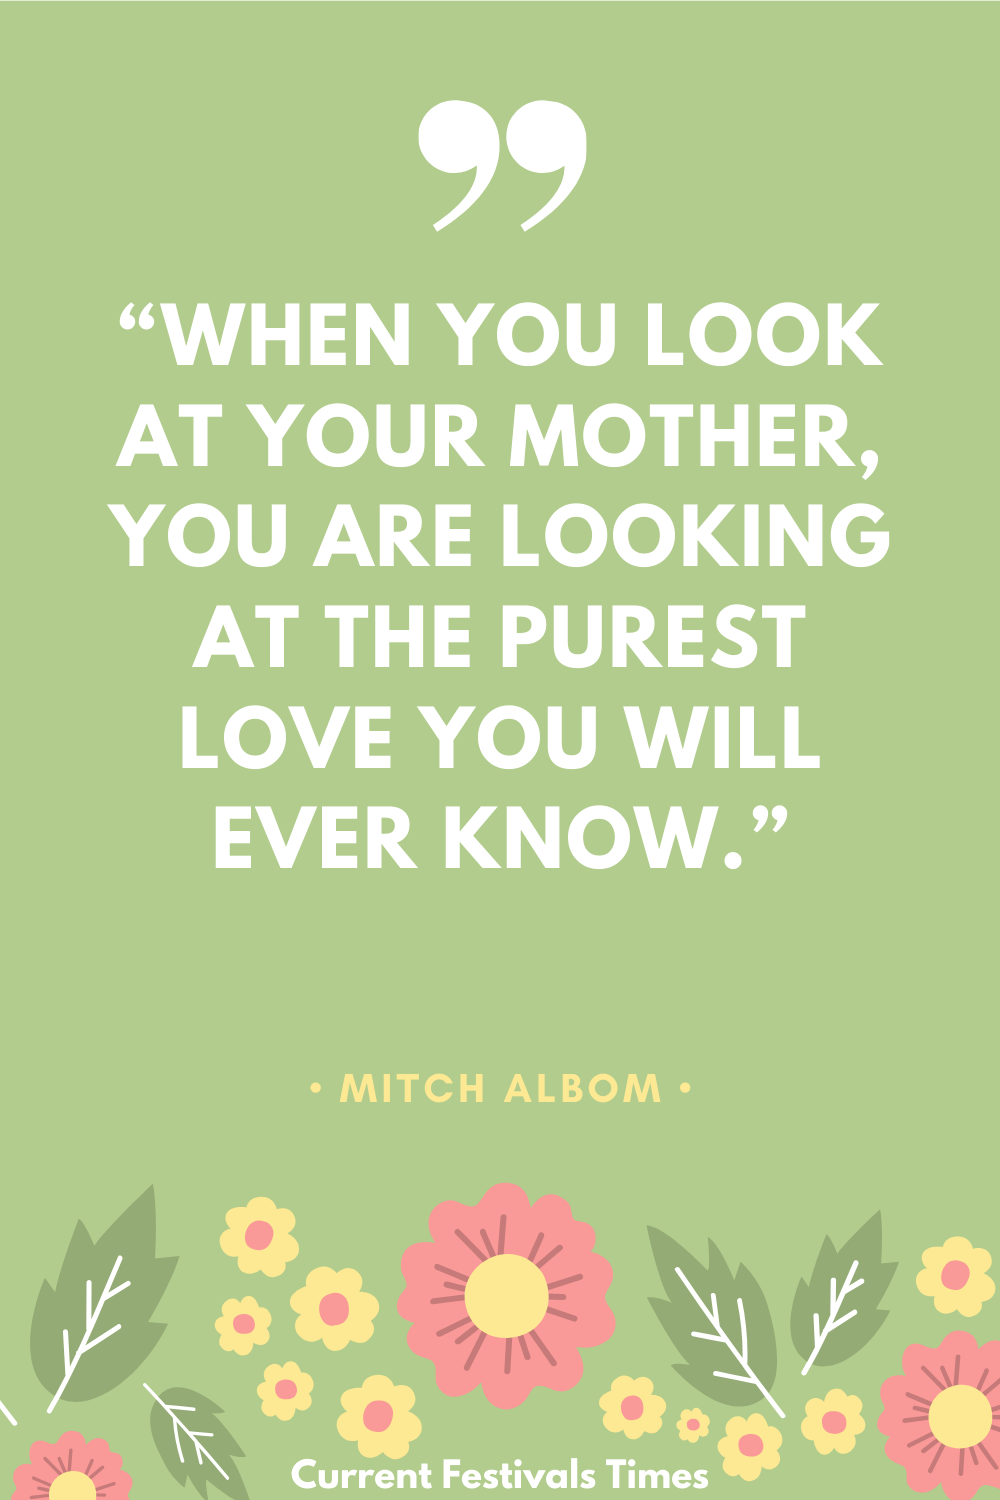 mother's day quotes and images